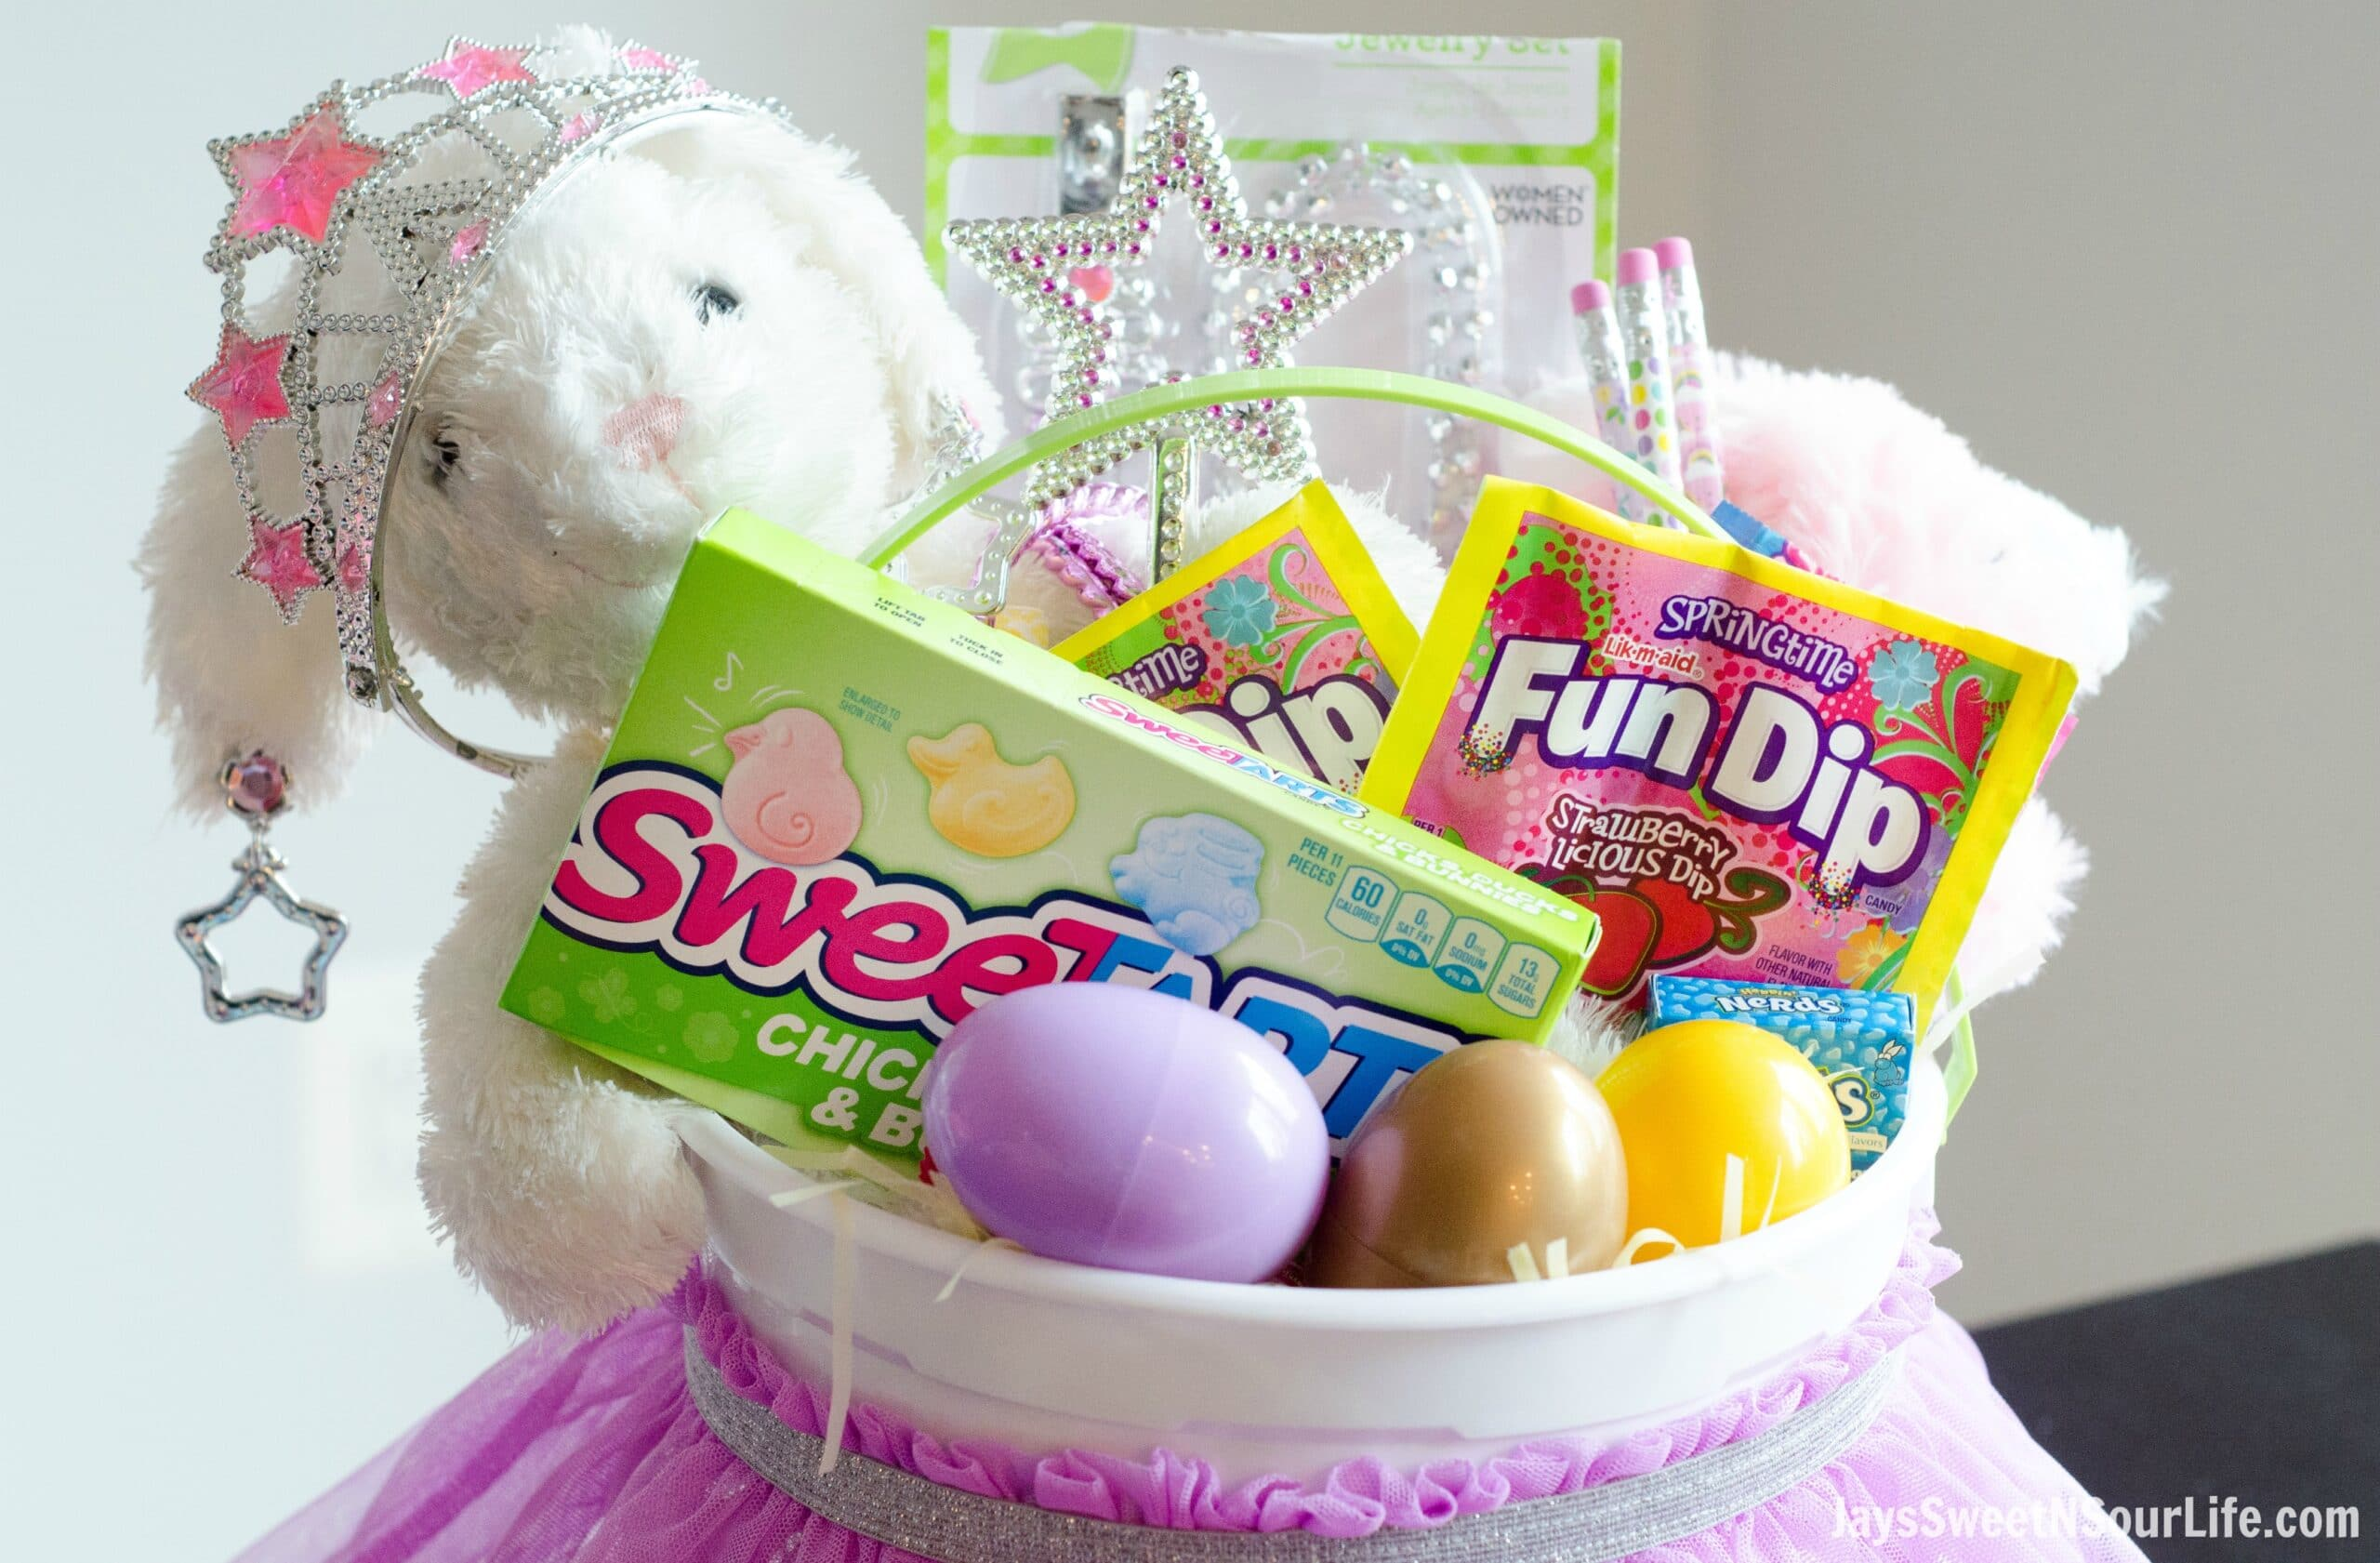 This Princess Easter Basket comes equippted with everything your Princess needs. Packed with princess necessities and Nestle candy of course.